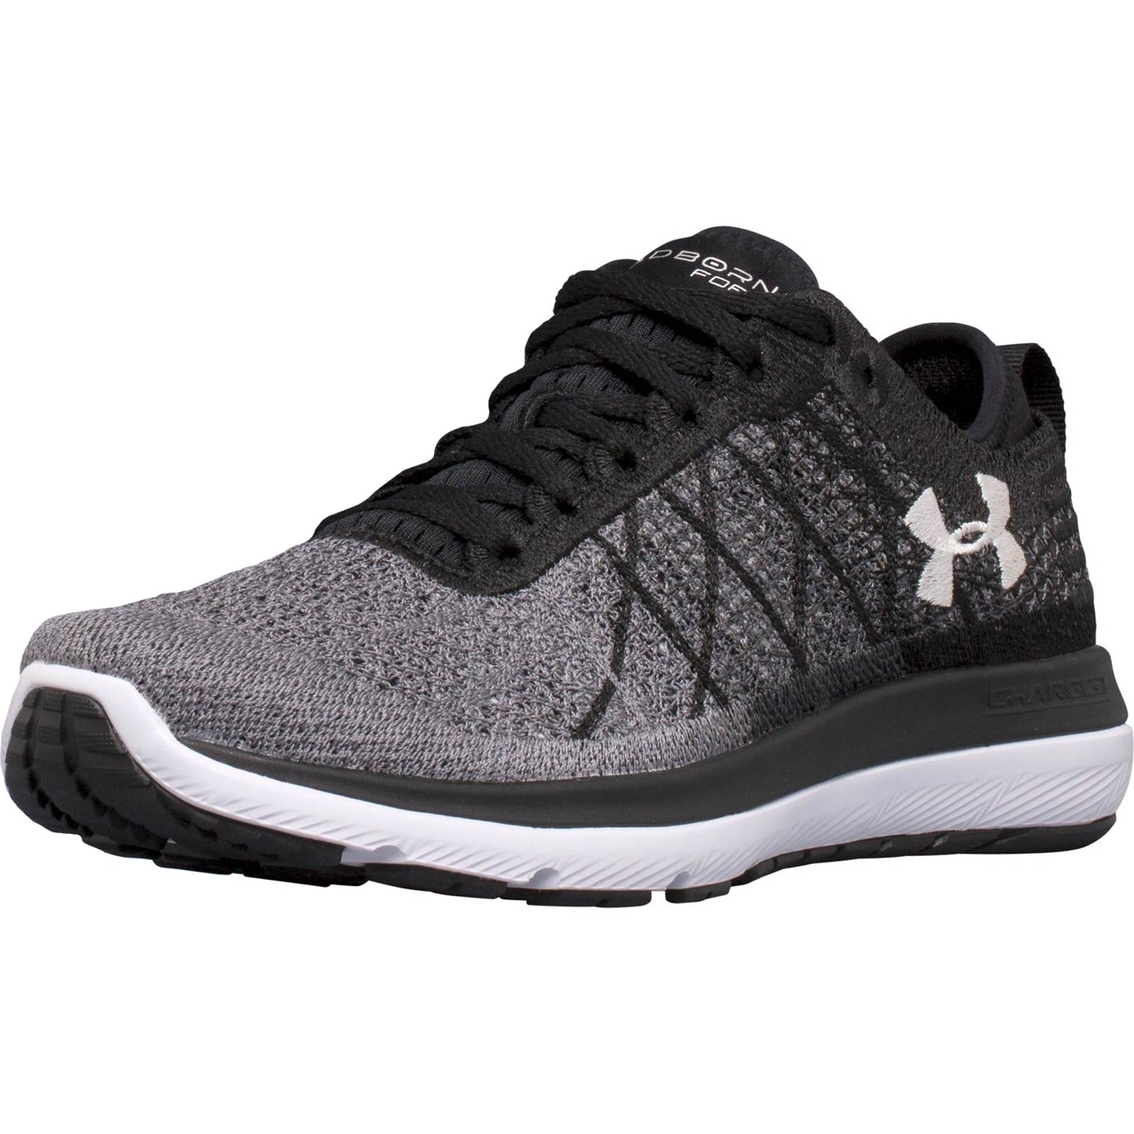 UA W THREADBORNE FORTIS - FOOTWEAR - Low-tops & sneakers Under Armour CsnM64s